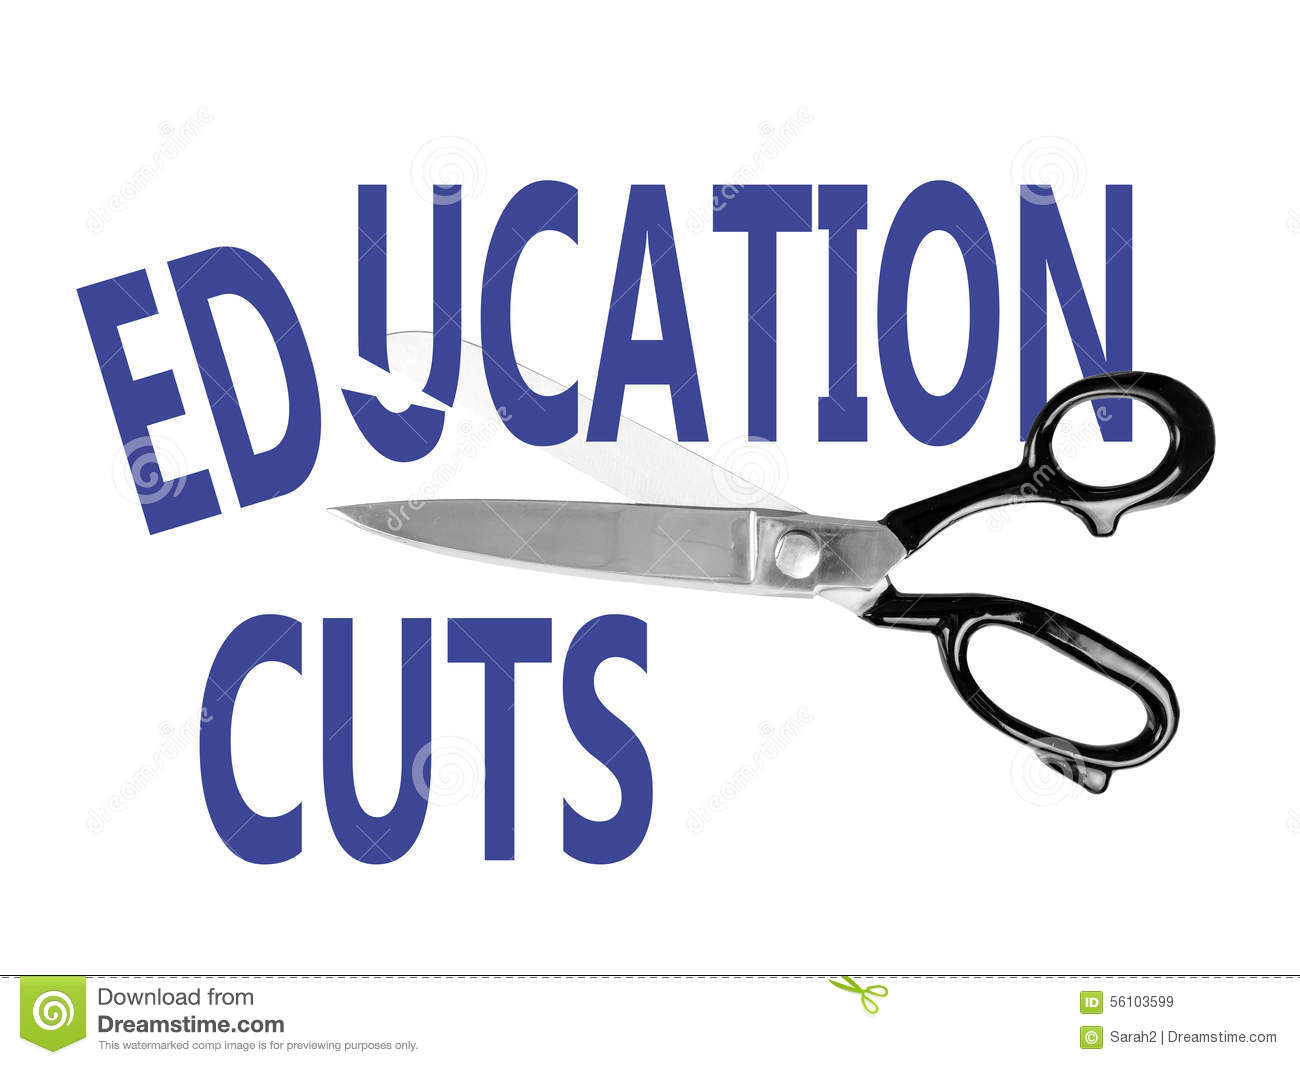 what are budget cuts in education